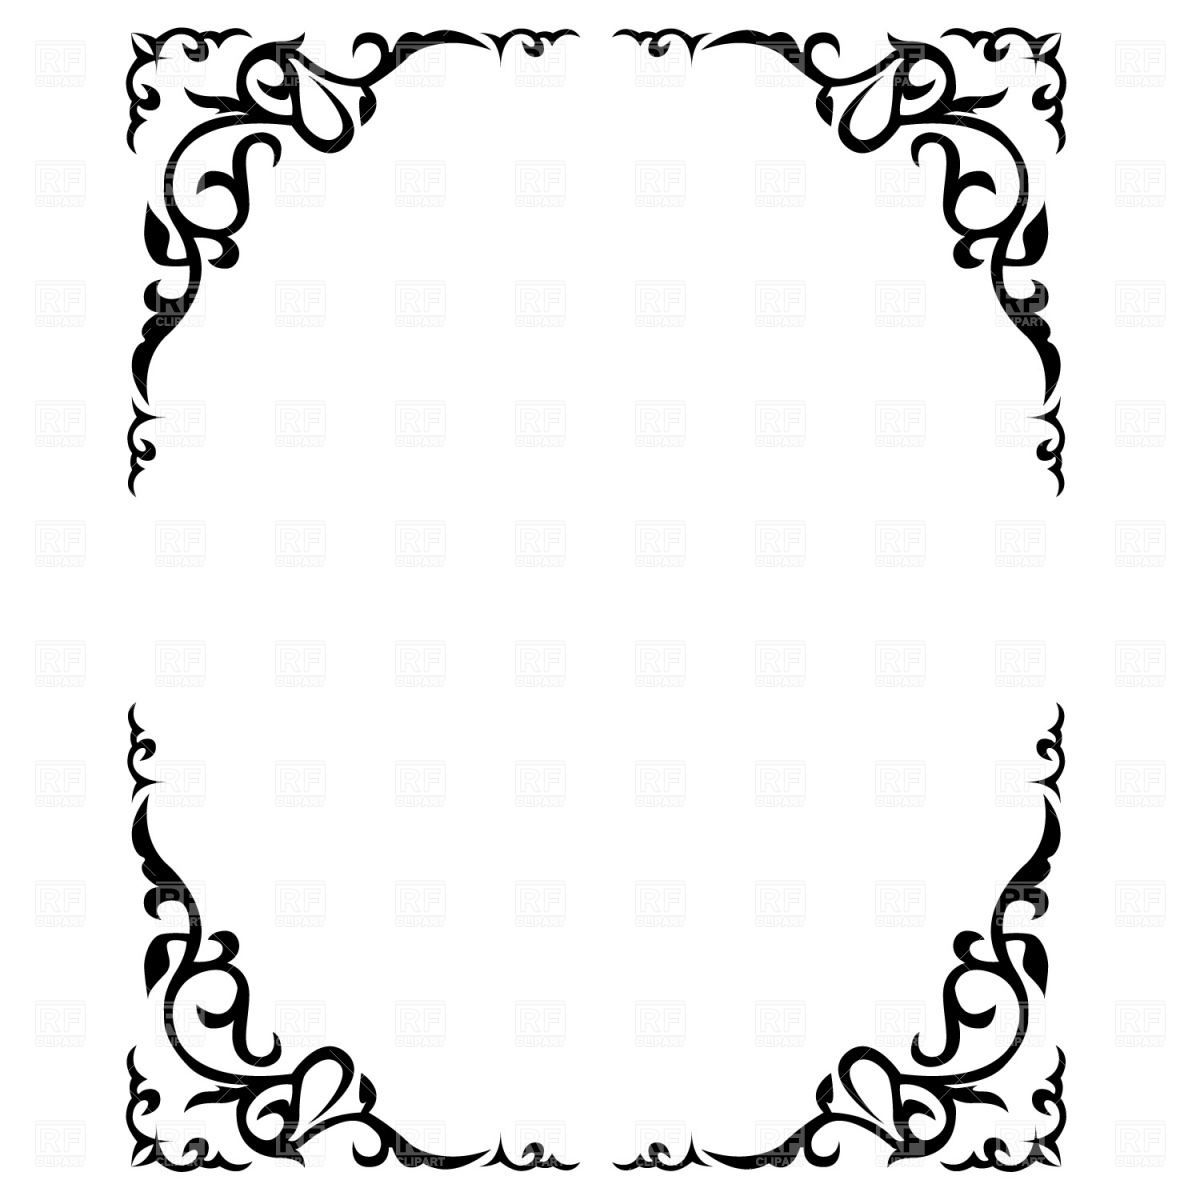 Floral borders free download vector free Floral vector clip art free download - ClipartFest vector free